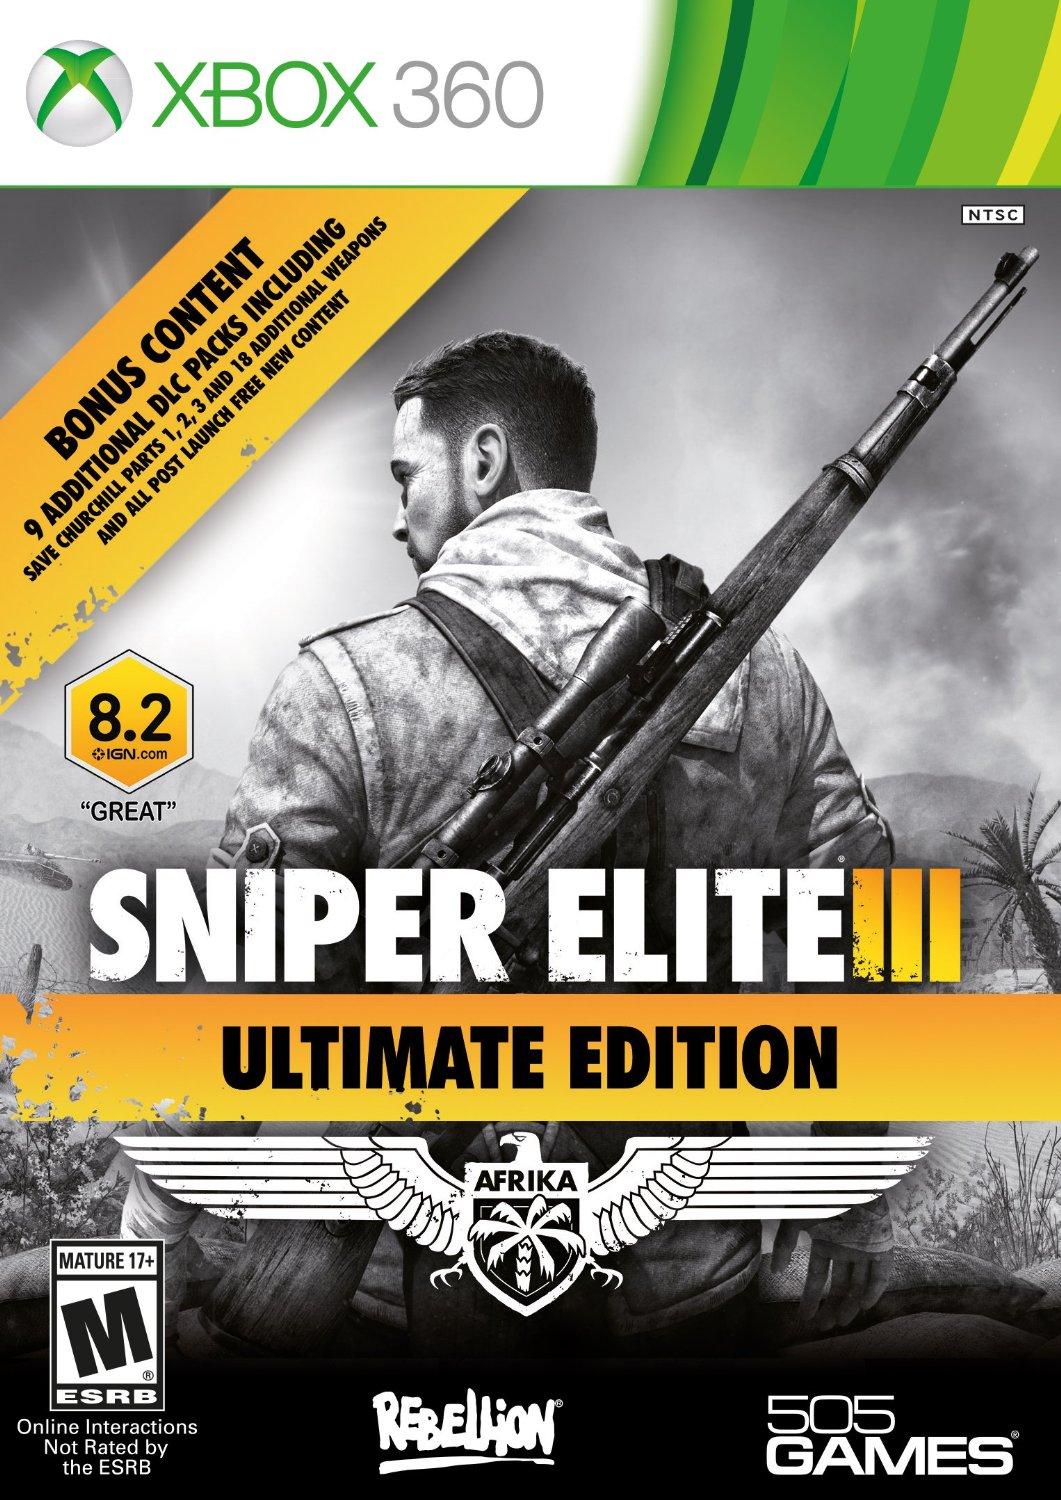 360: SNIPER ELITE III ULTIMATE EDITION (COMPLETE)